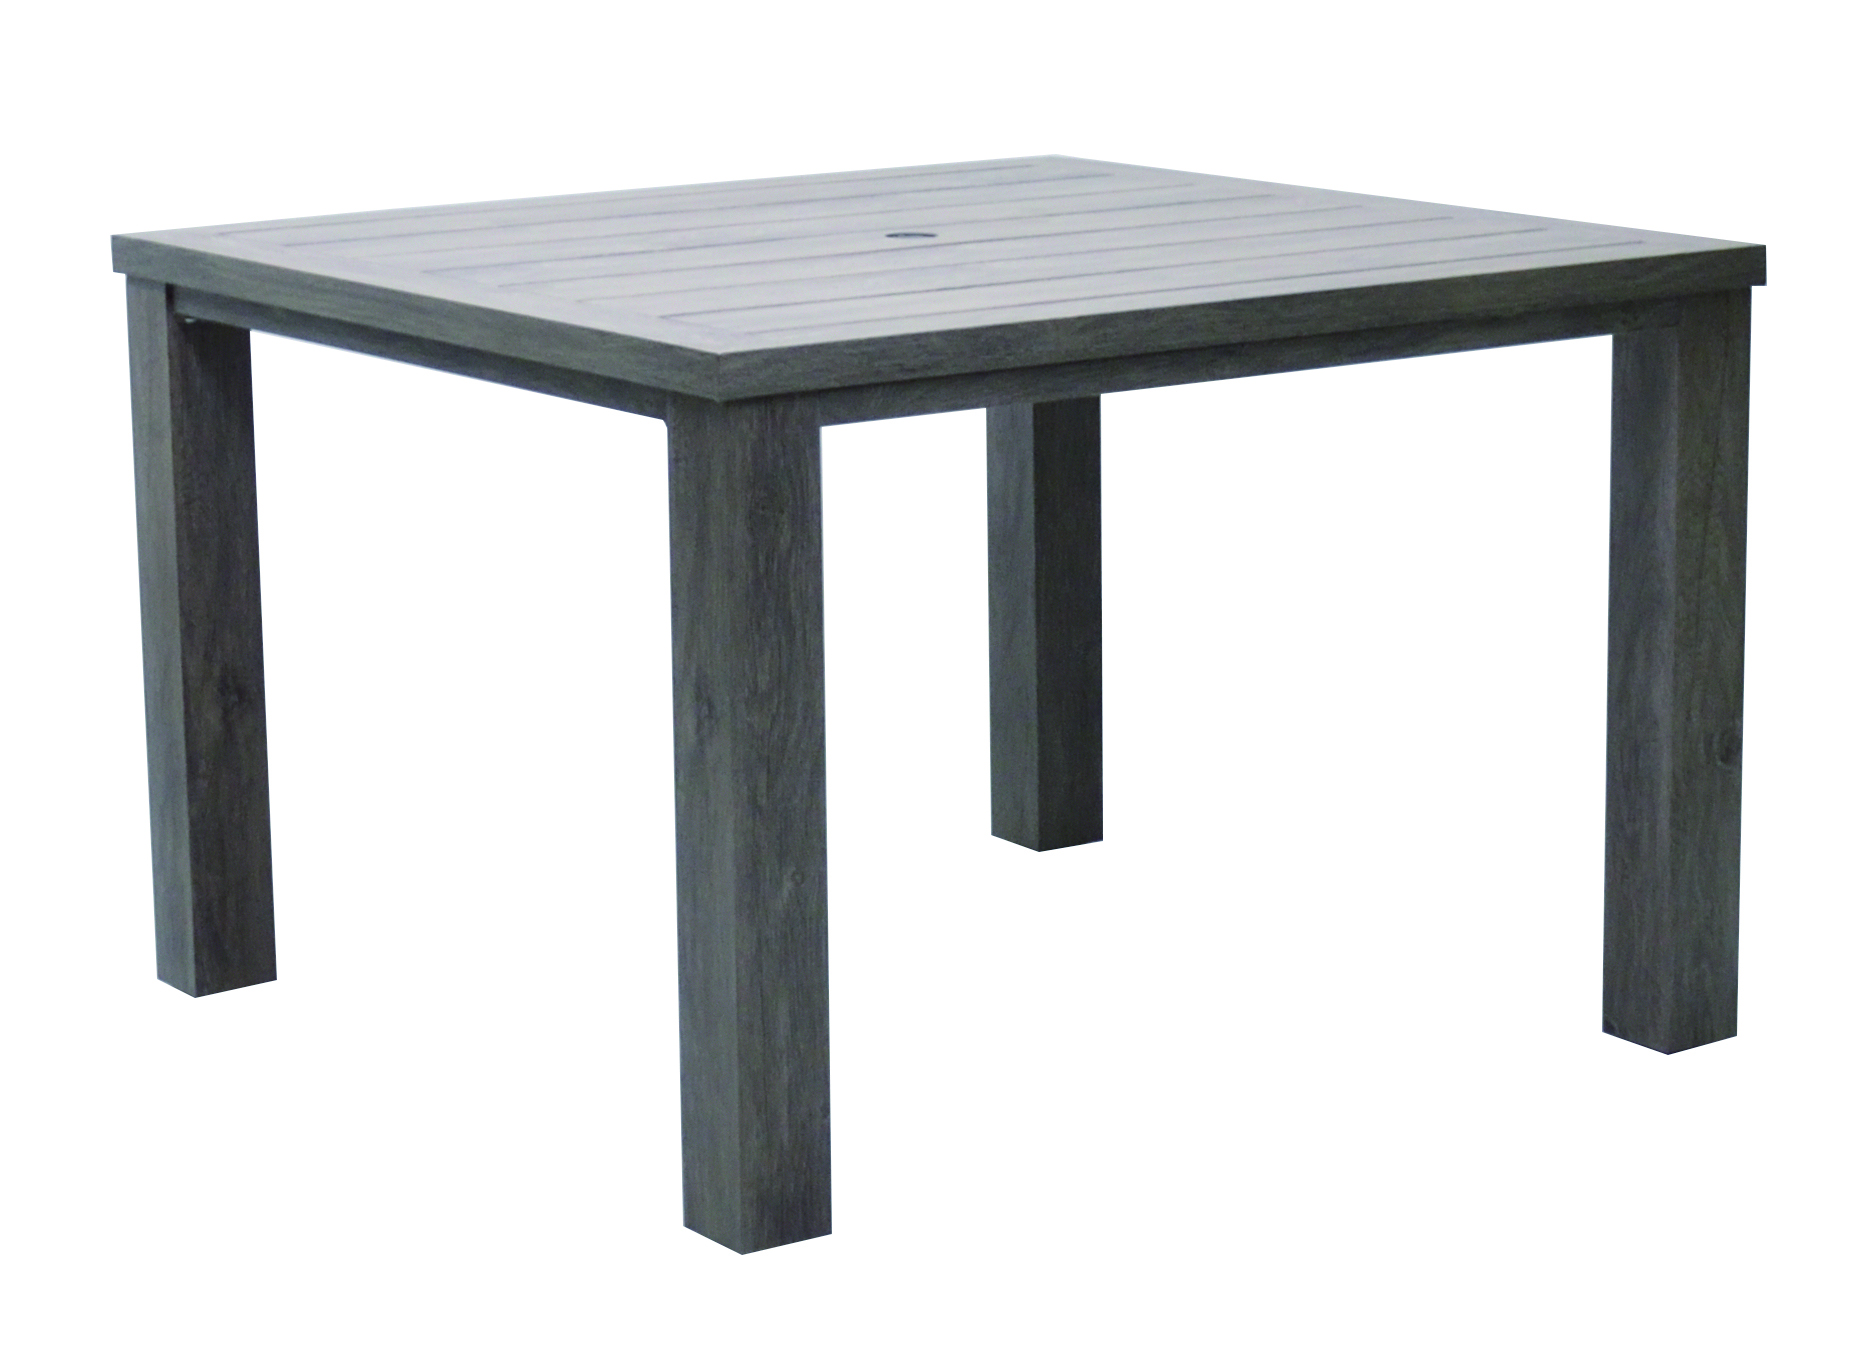 "SME-48C 48"" Counter Height Table   48"" x 48"" x 35"""